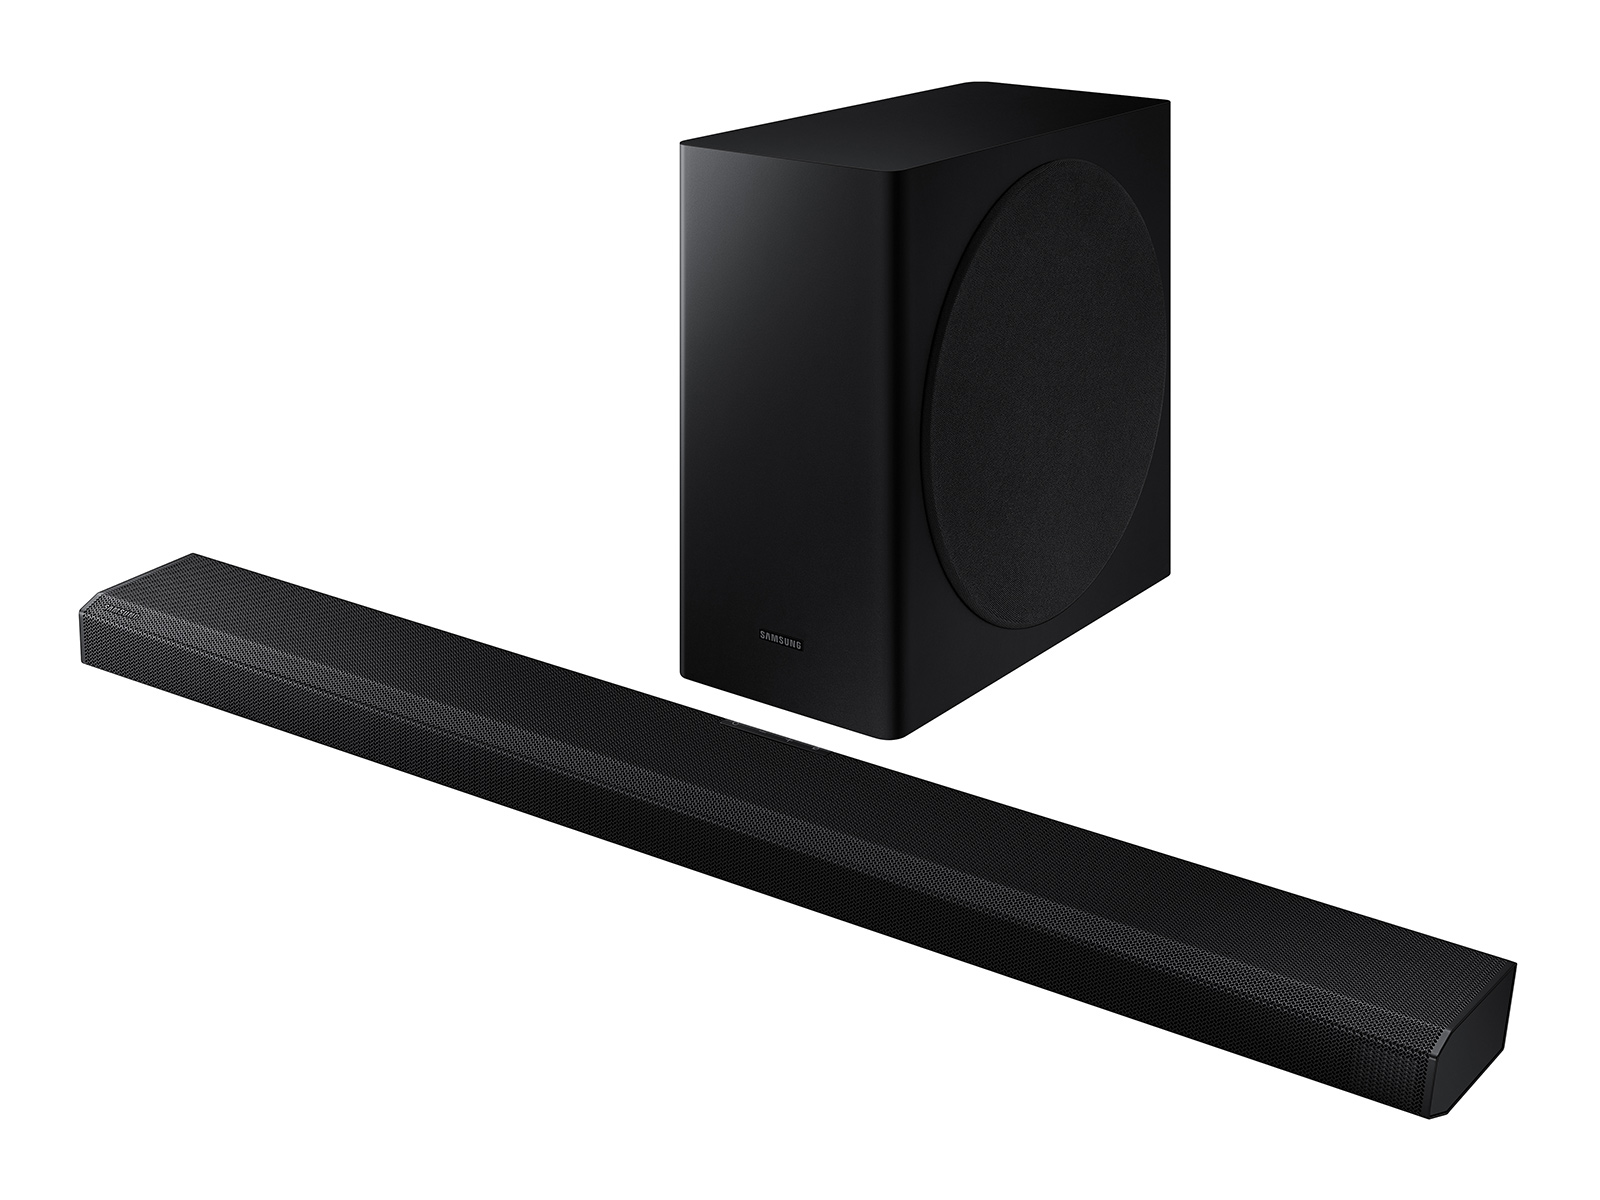 Samsung HW-Q800T 3.1.2 Channel Smart Soundbar - Black